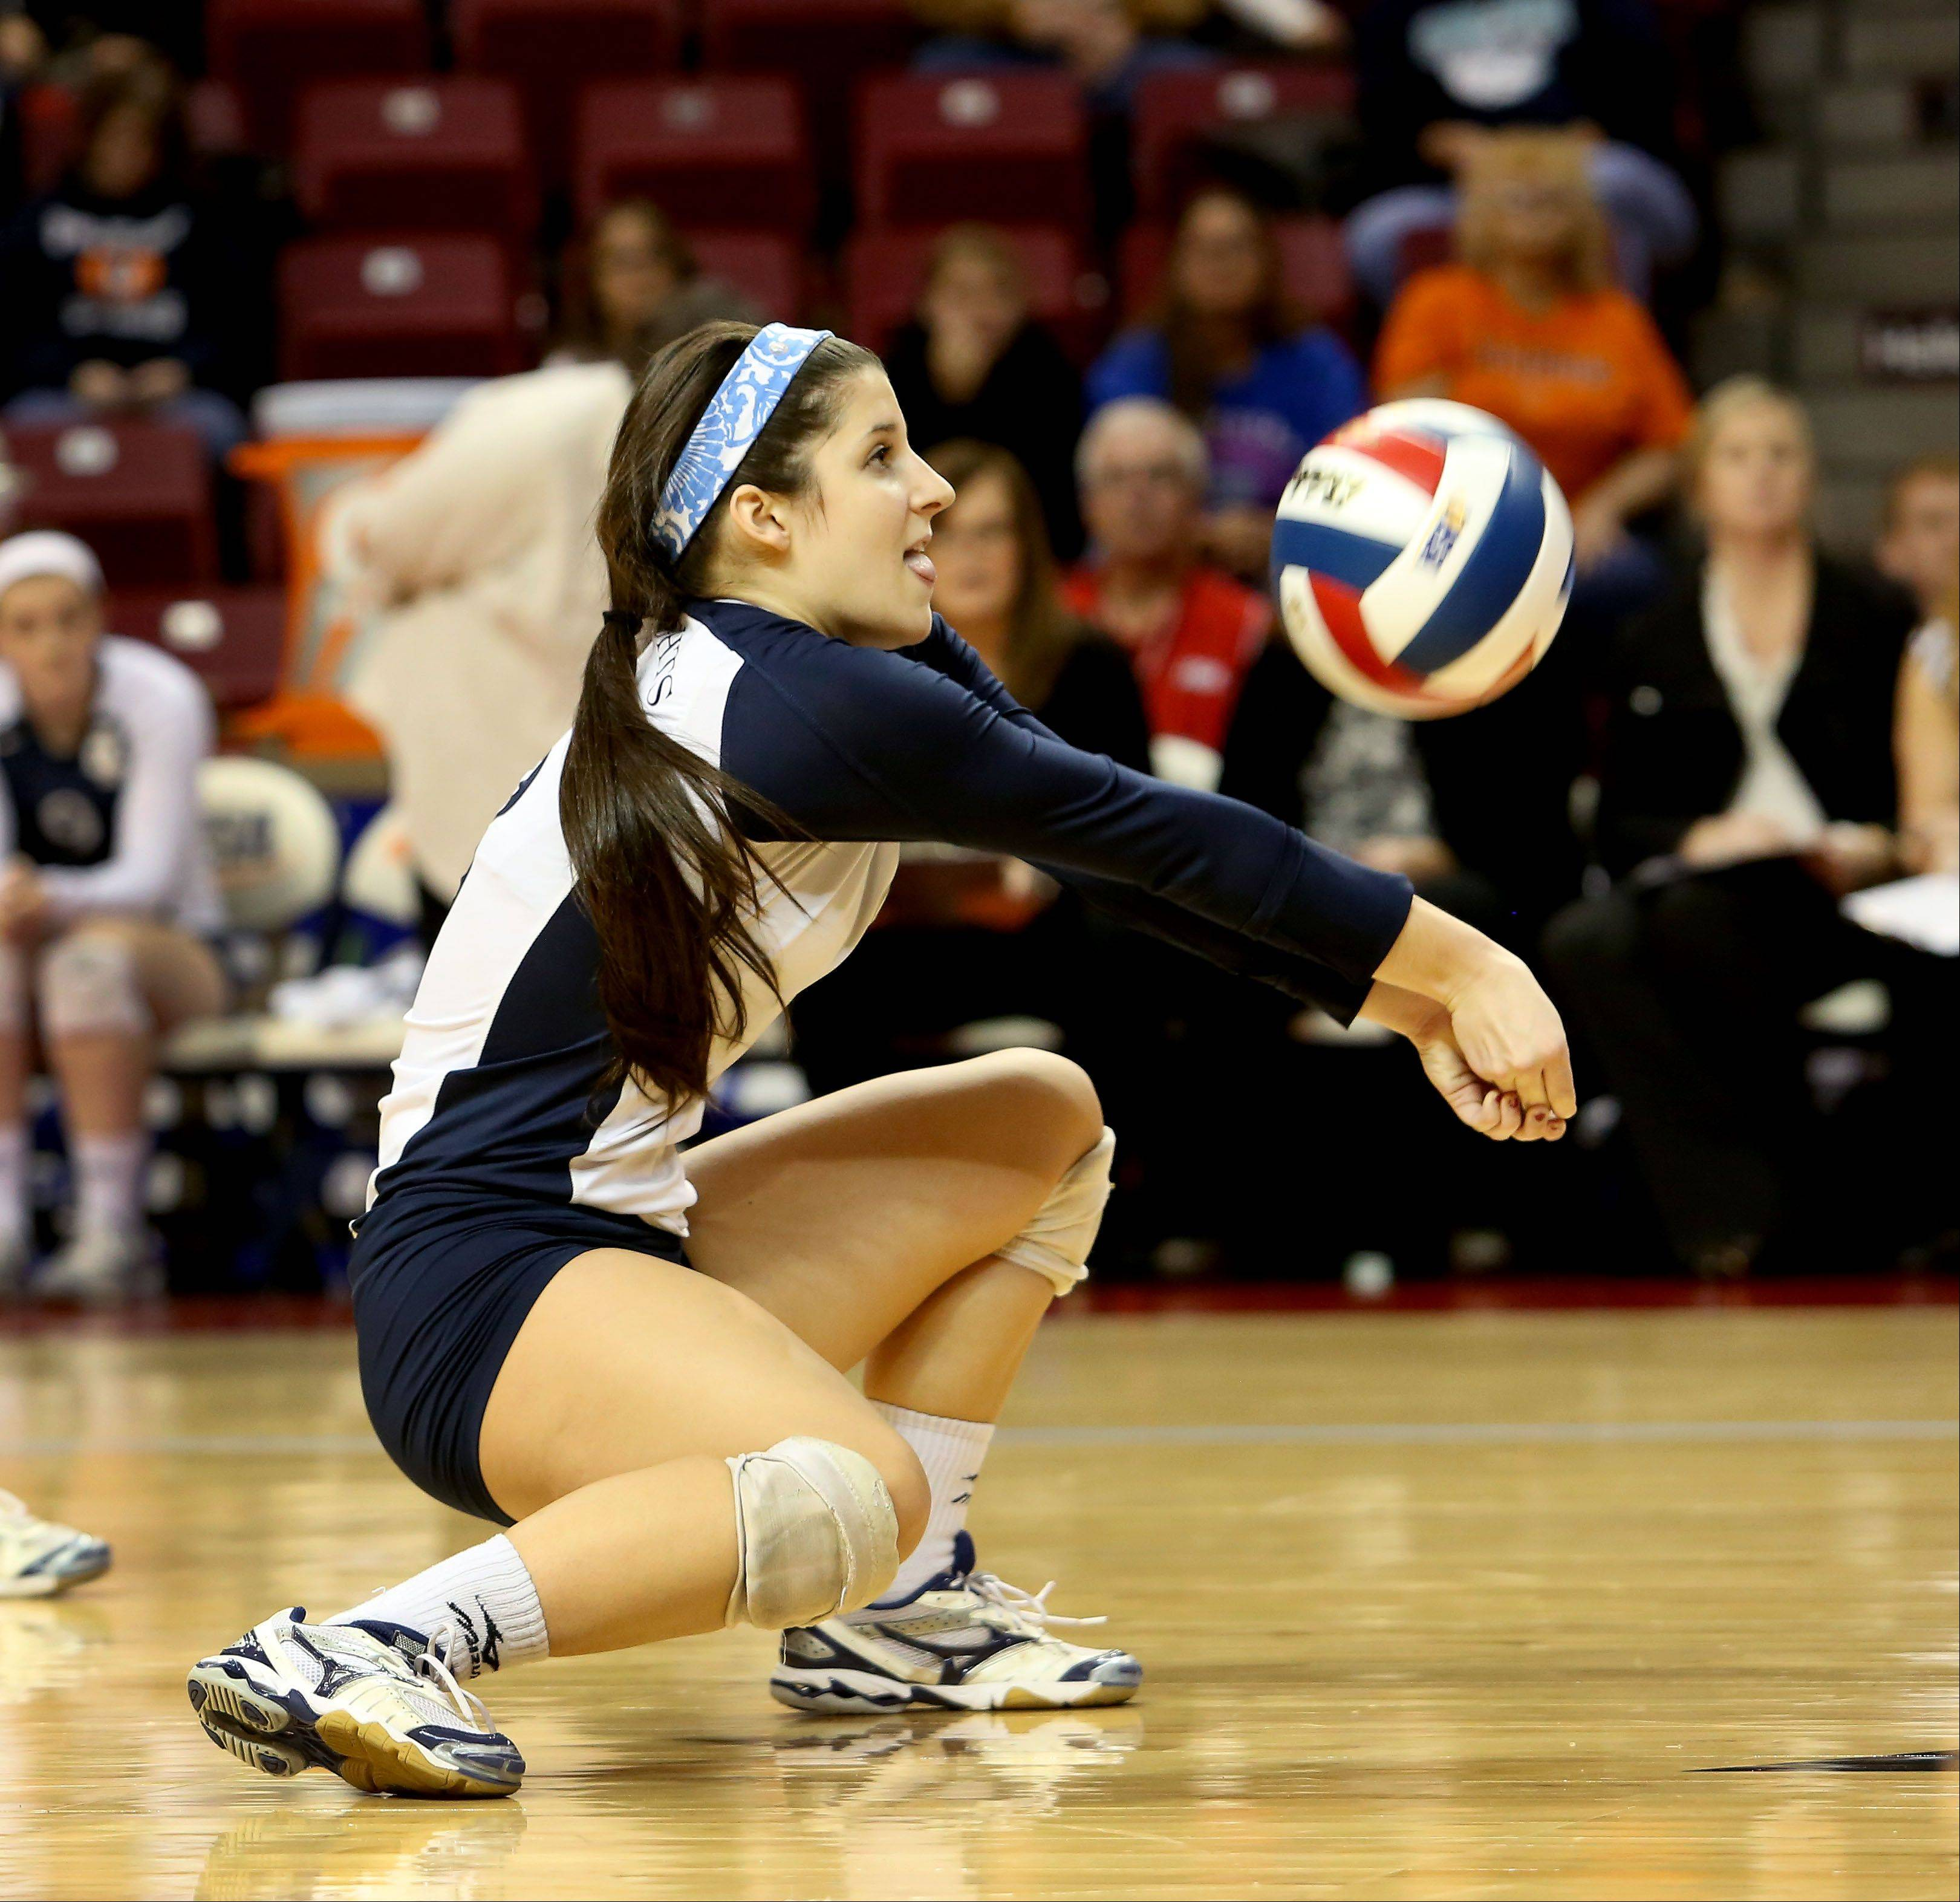 Kerry Mulligan of IC Catholic digs deep for a ball against Edwards County in the Class 2A championship girls volleyball match on Saturday in Normal.